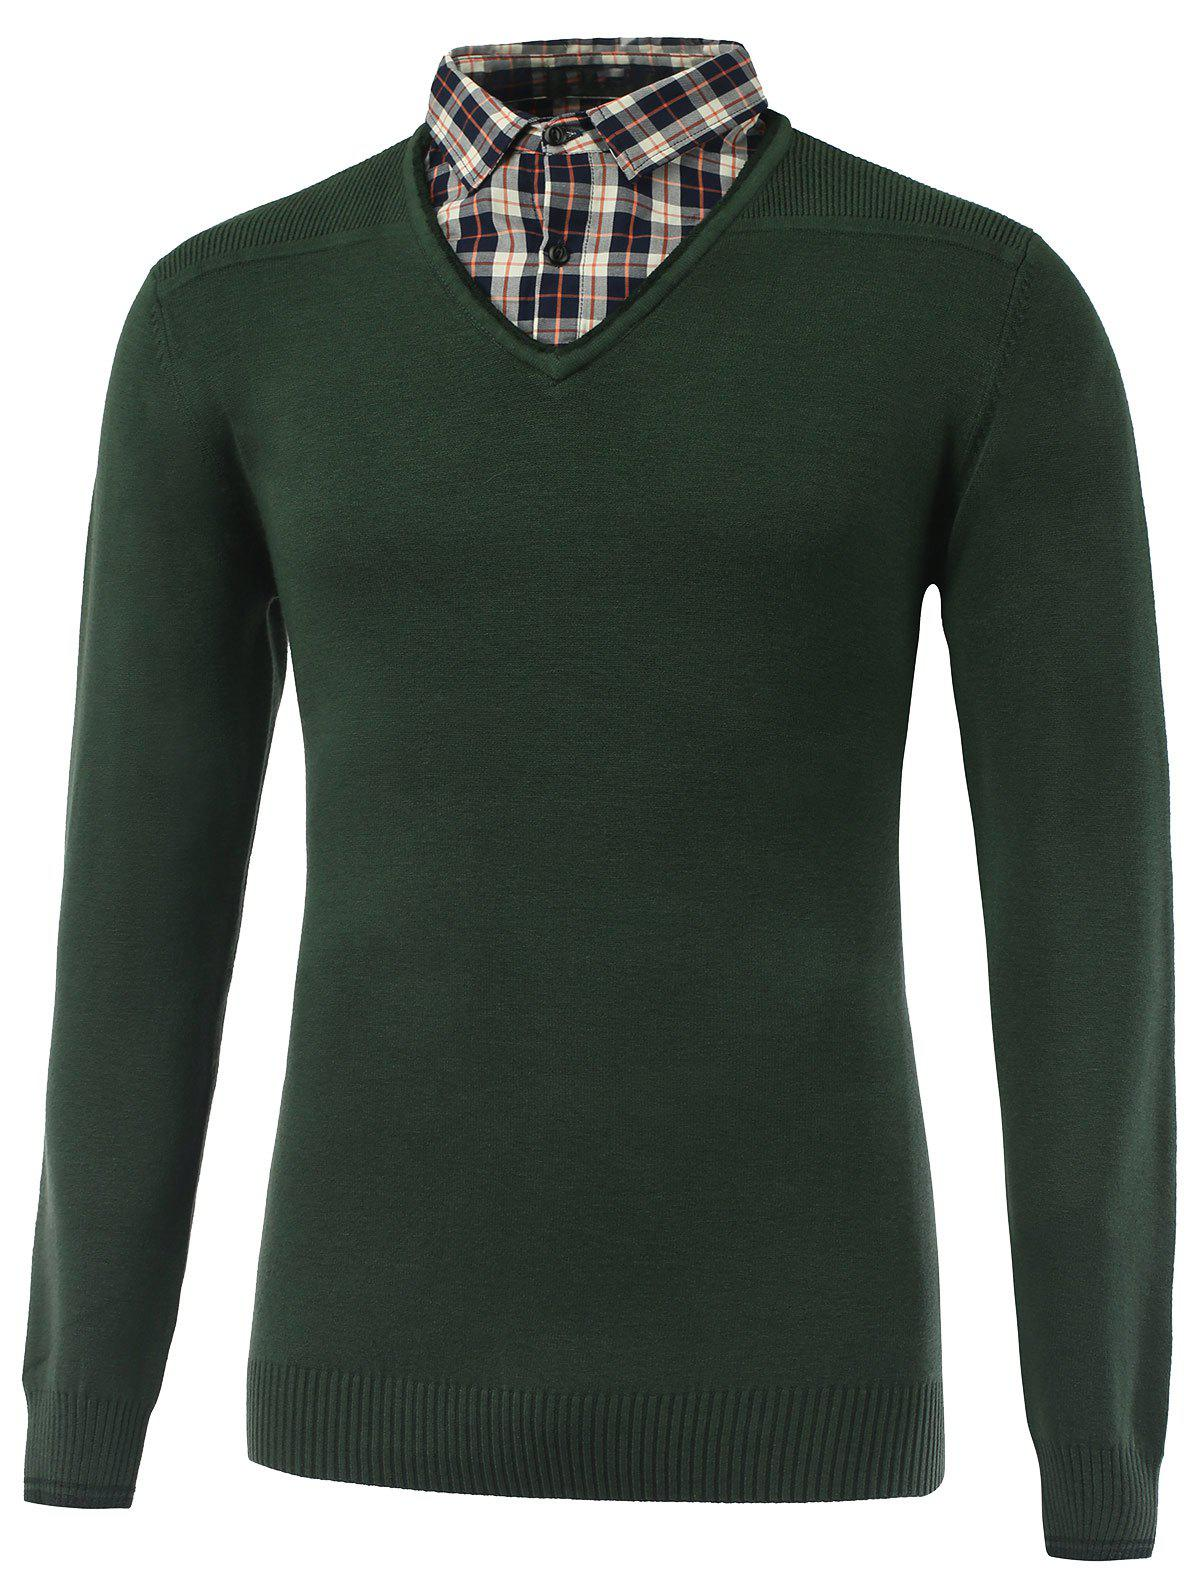 Buy Rib Cuff Plaid Long Sleeve Pullover Knitwear BLACKISH GREEN